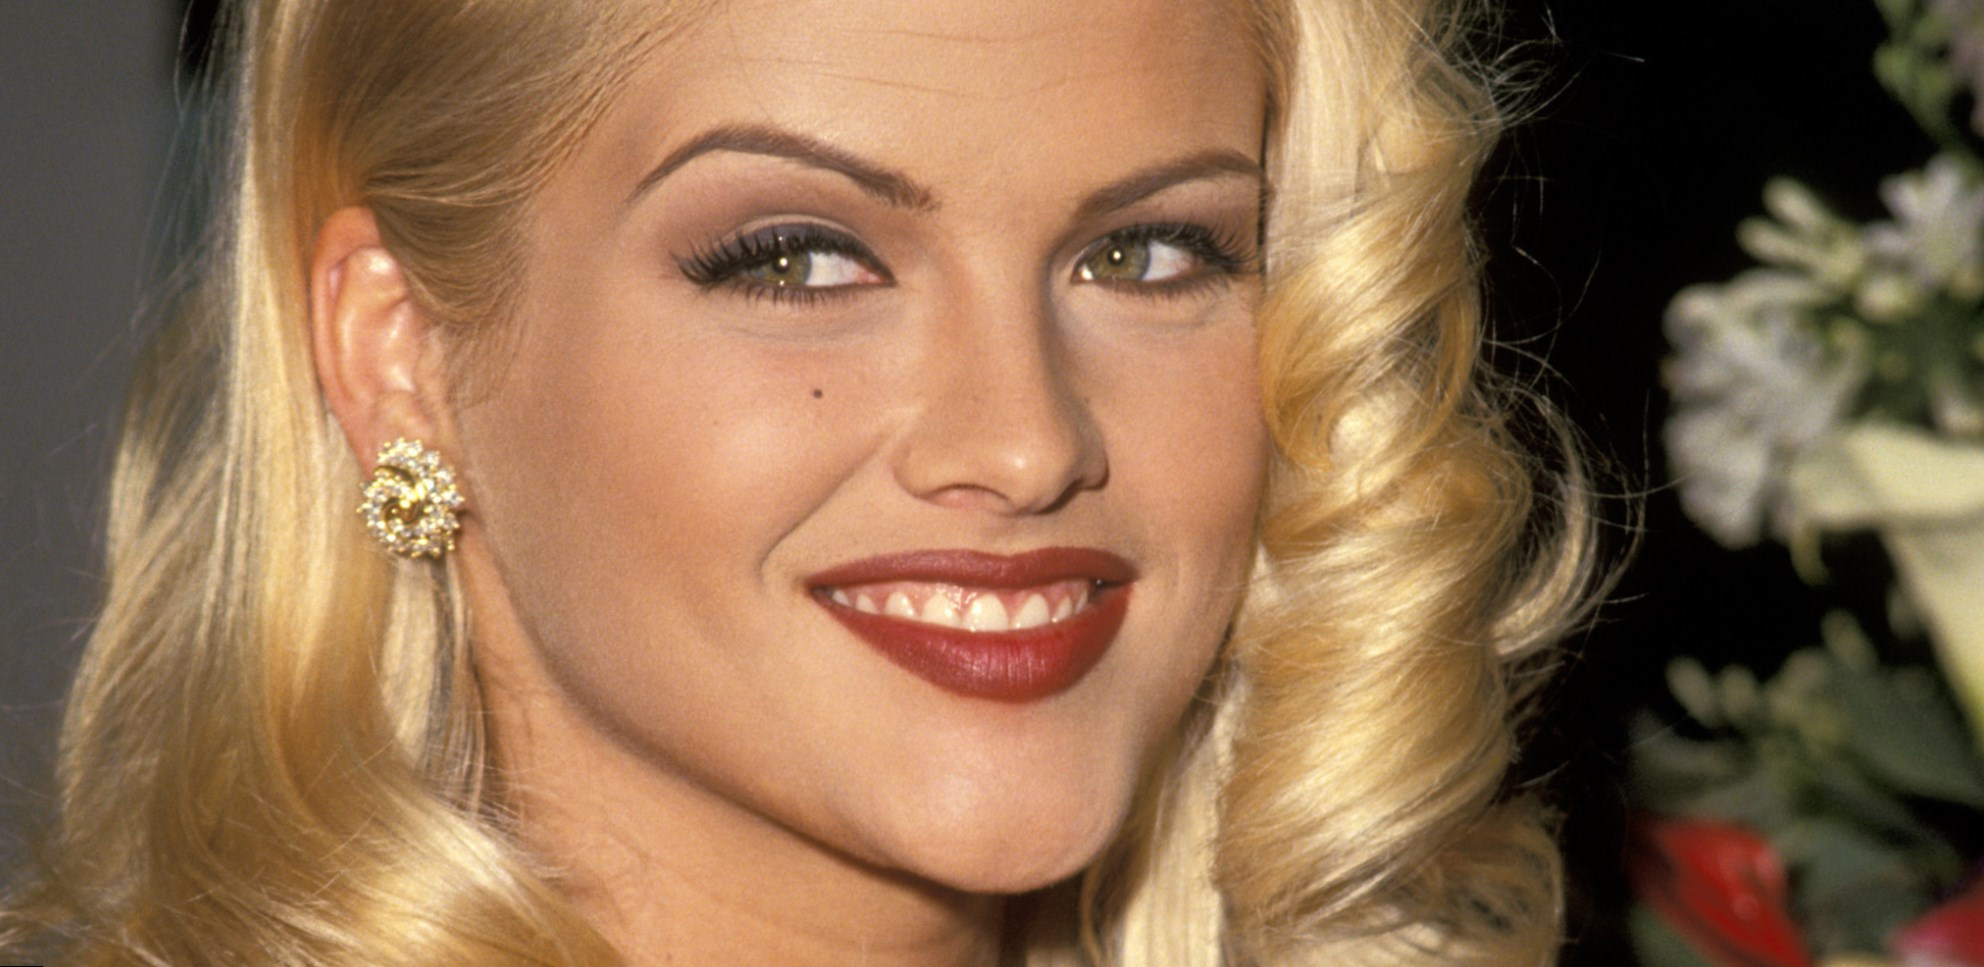 anna nicole smith википедия